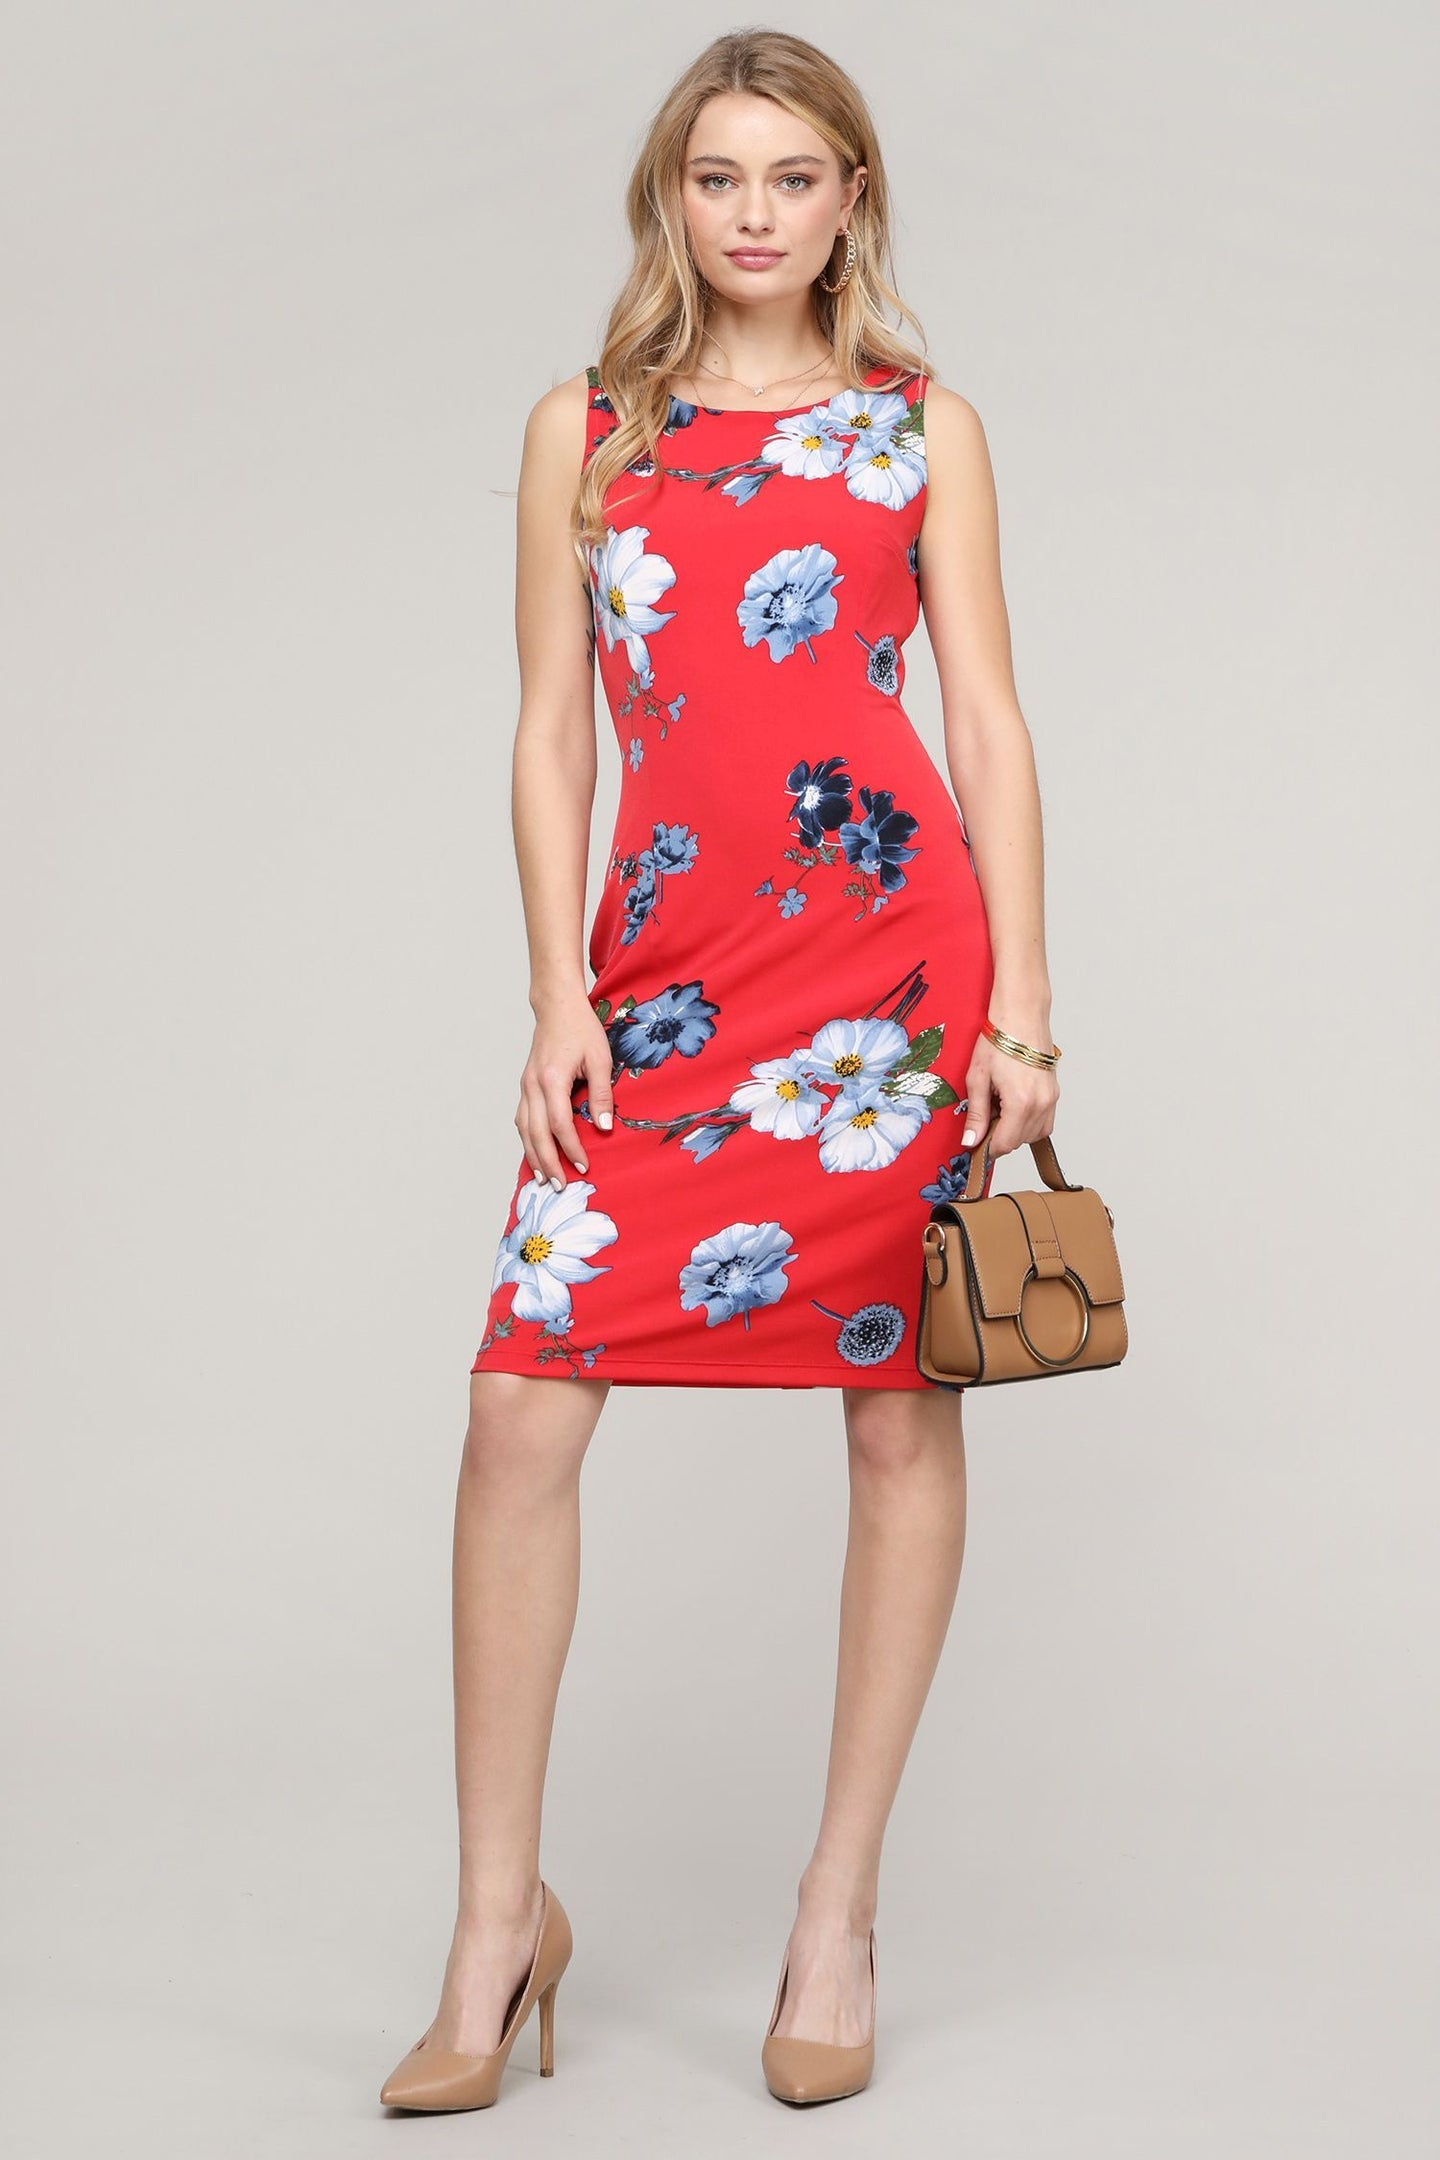 Sleeveless Red Floral Dress